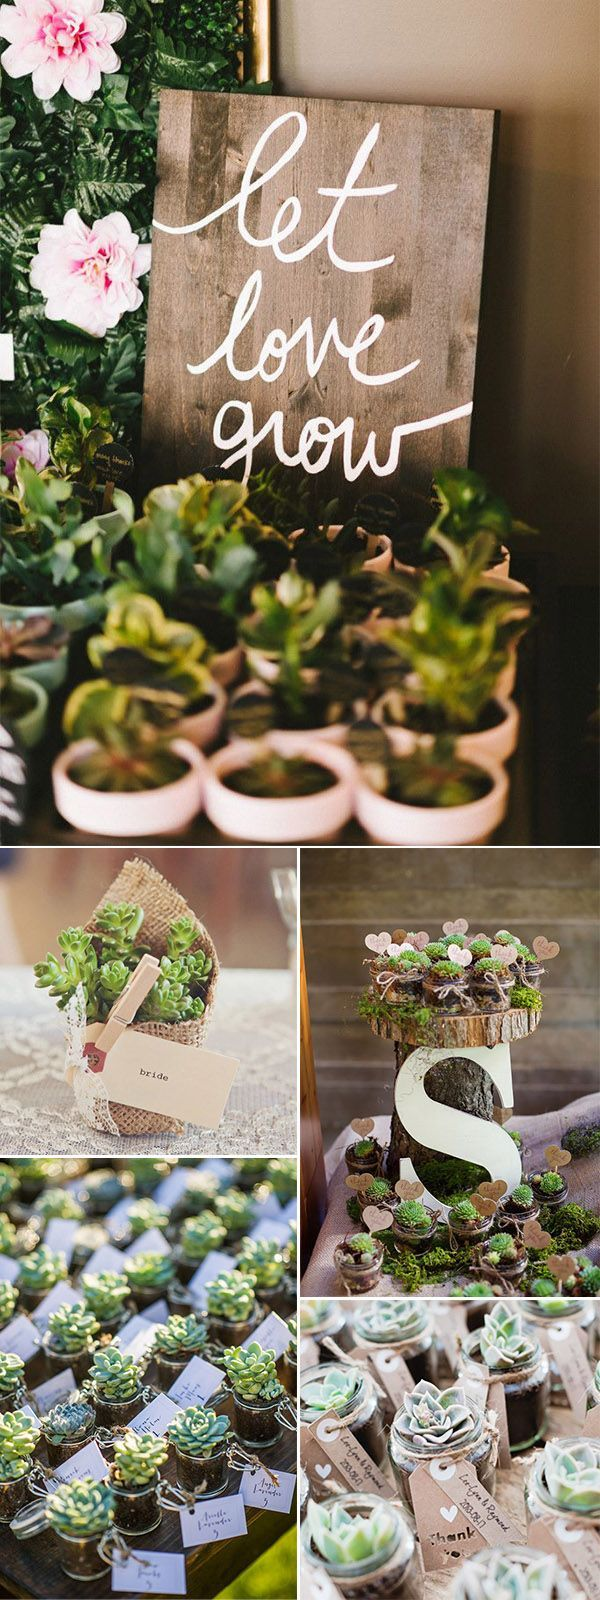 DIY succulent wedding favor ideas #WeddingFavorIdeas